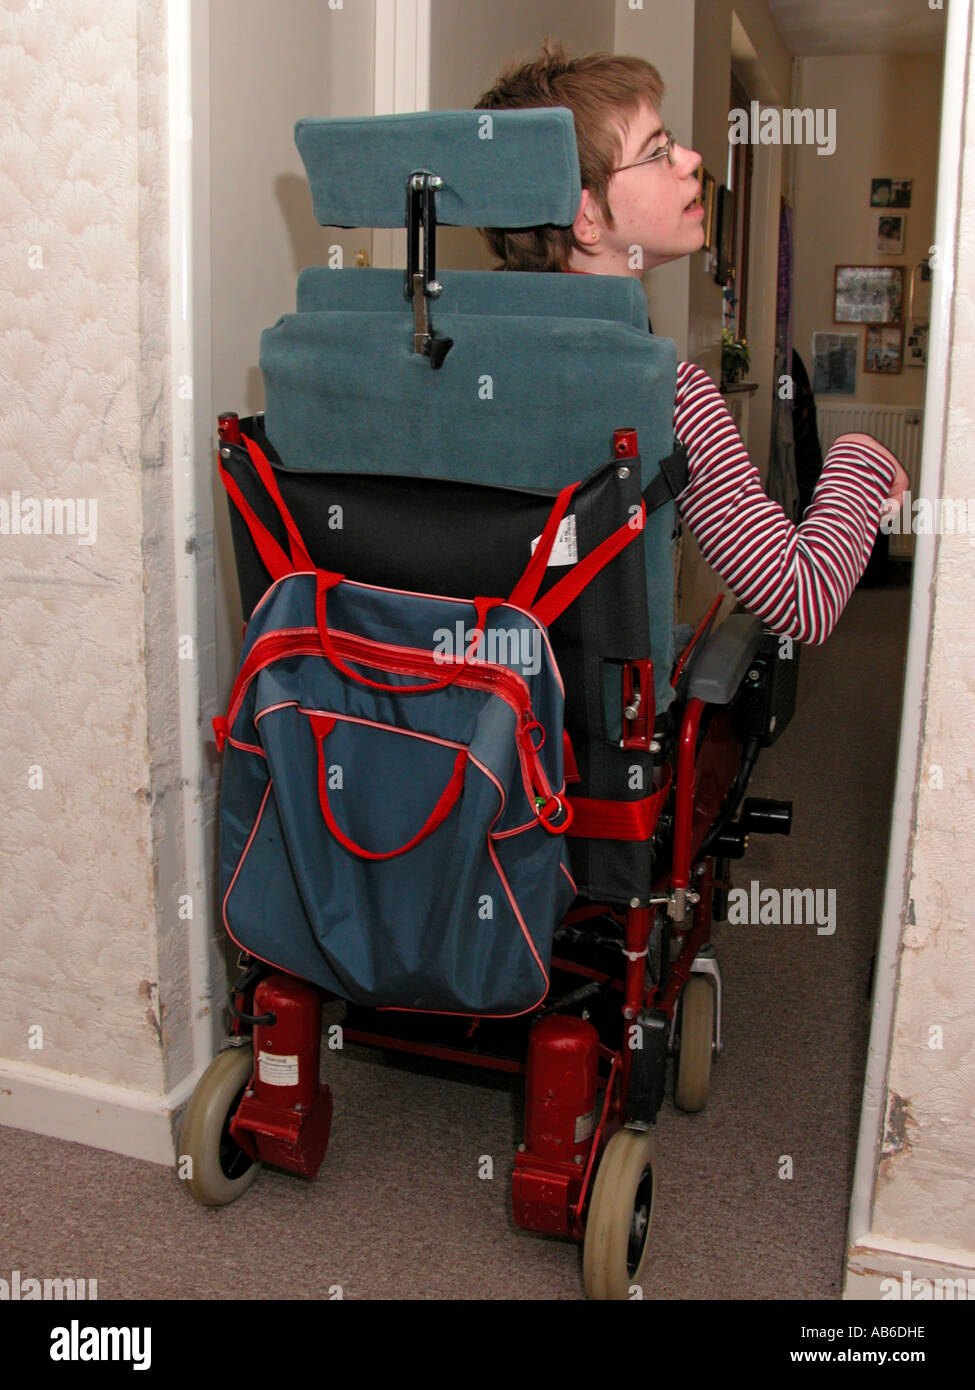 18yr old teenage girl with cerebral palsy managing to manoeuvre wheelchair to get down corridor - Stock Image